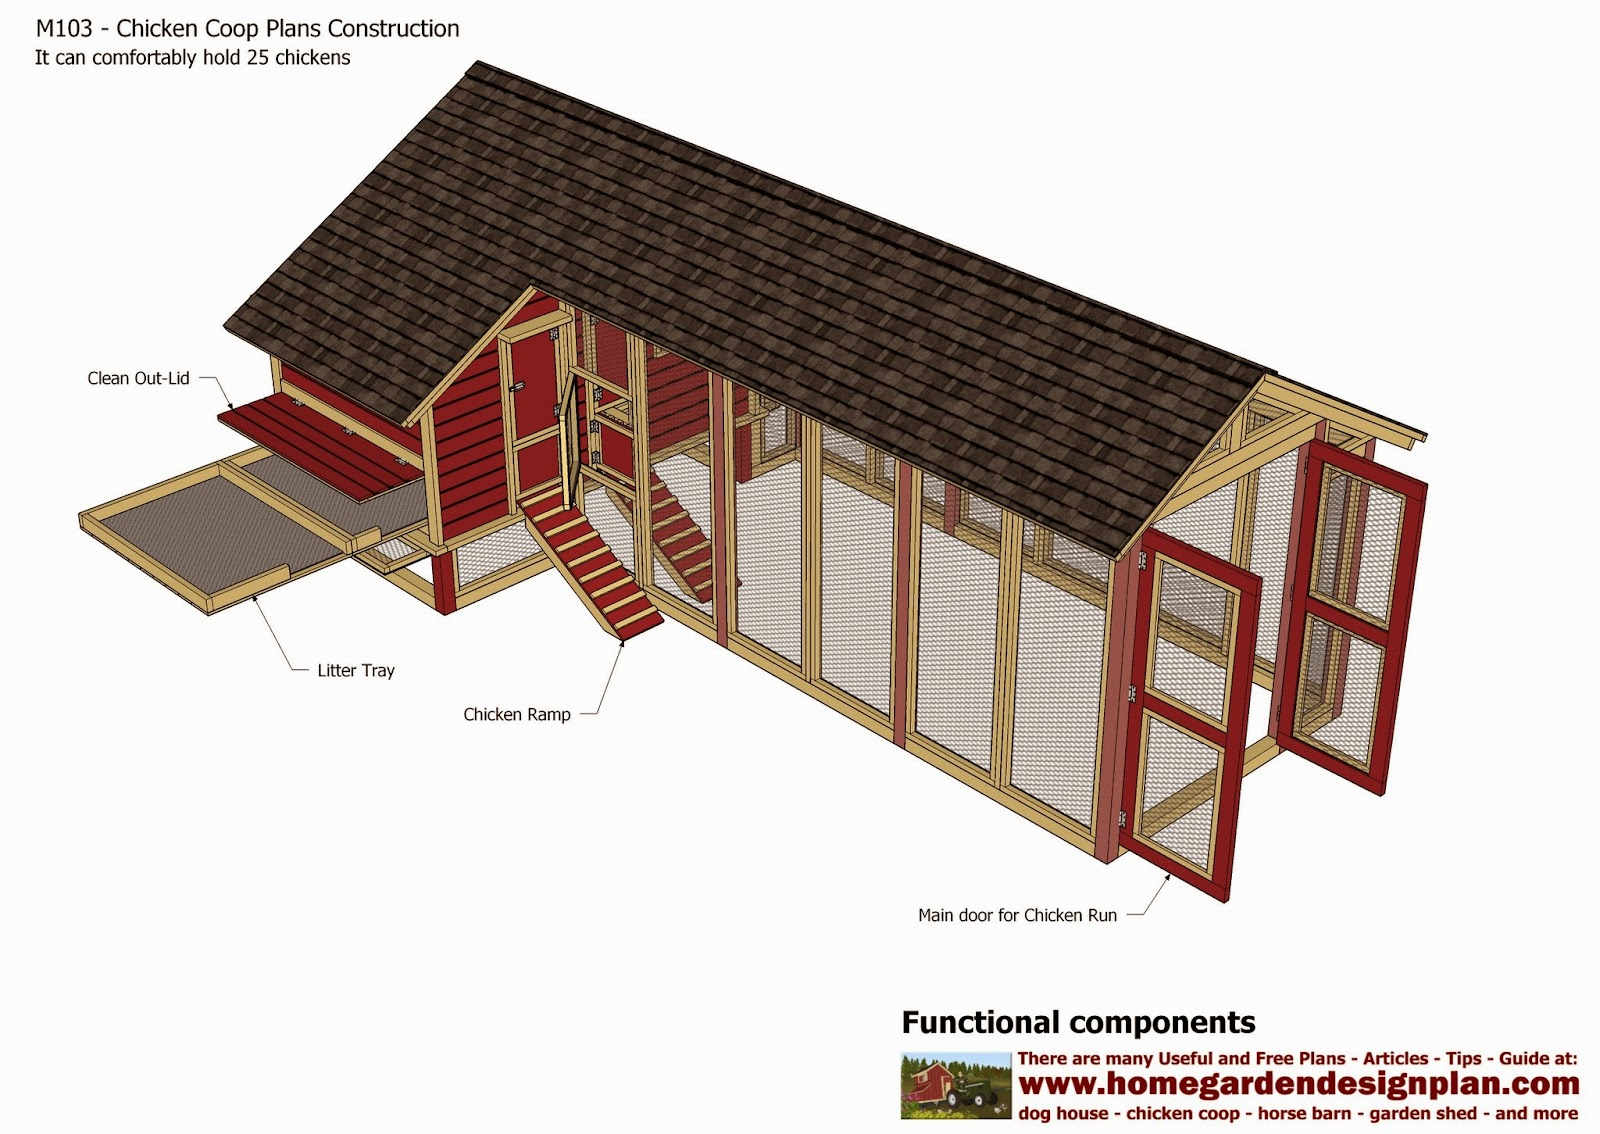 Home garden plans m103 chicken coop plans construction for Free coop plans